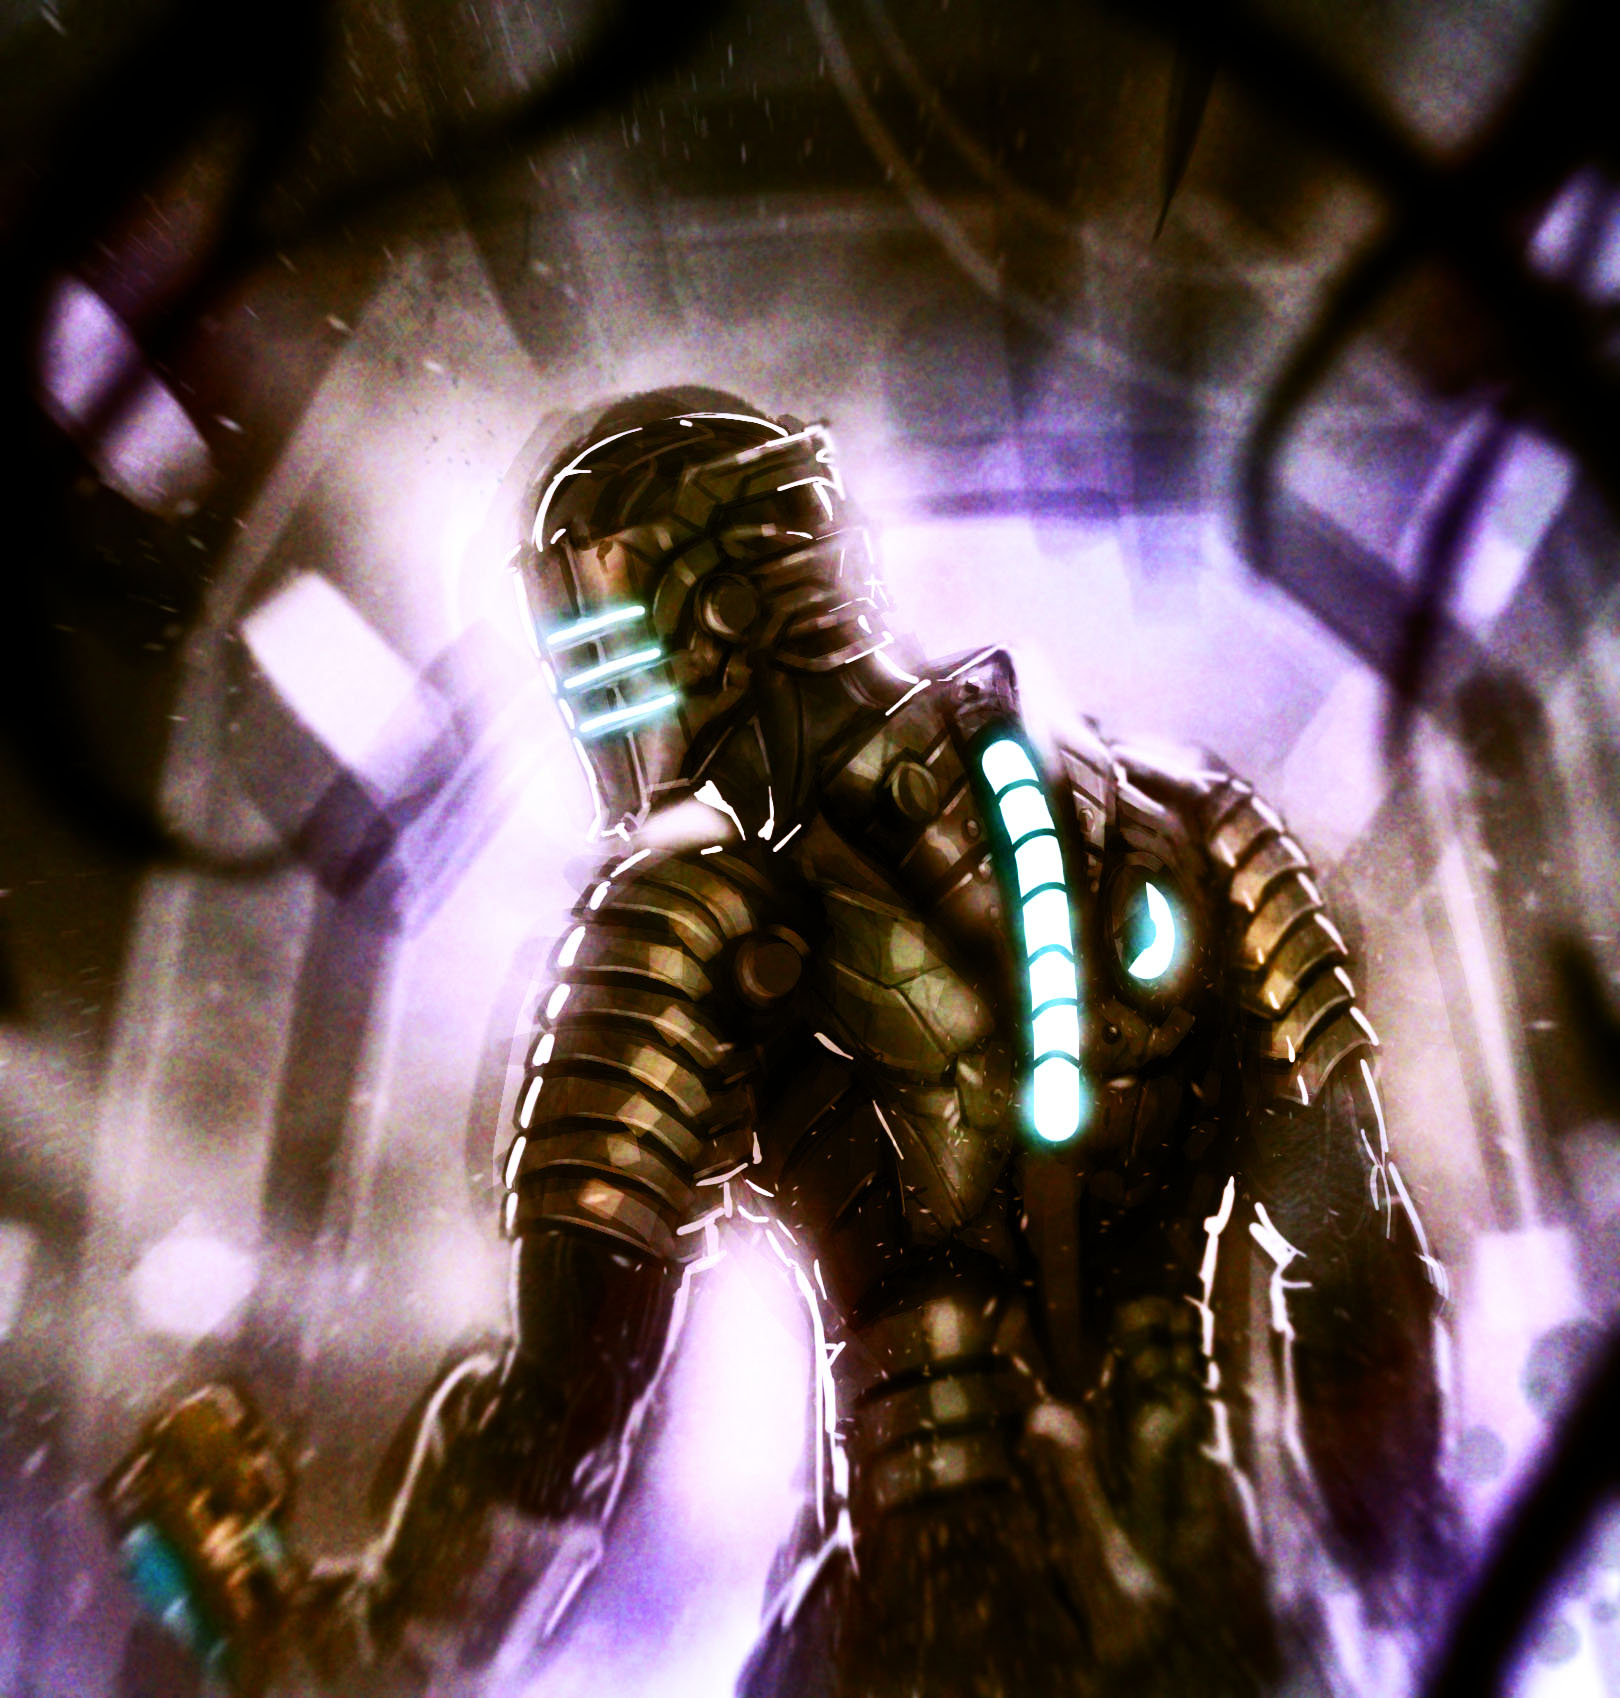 Dead Space FanArt